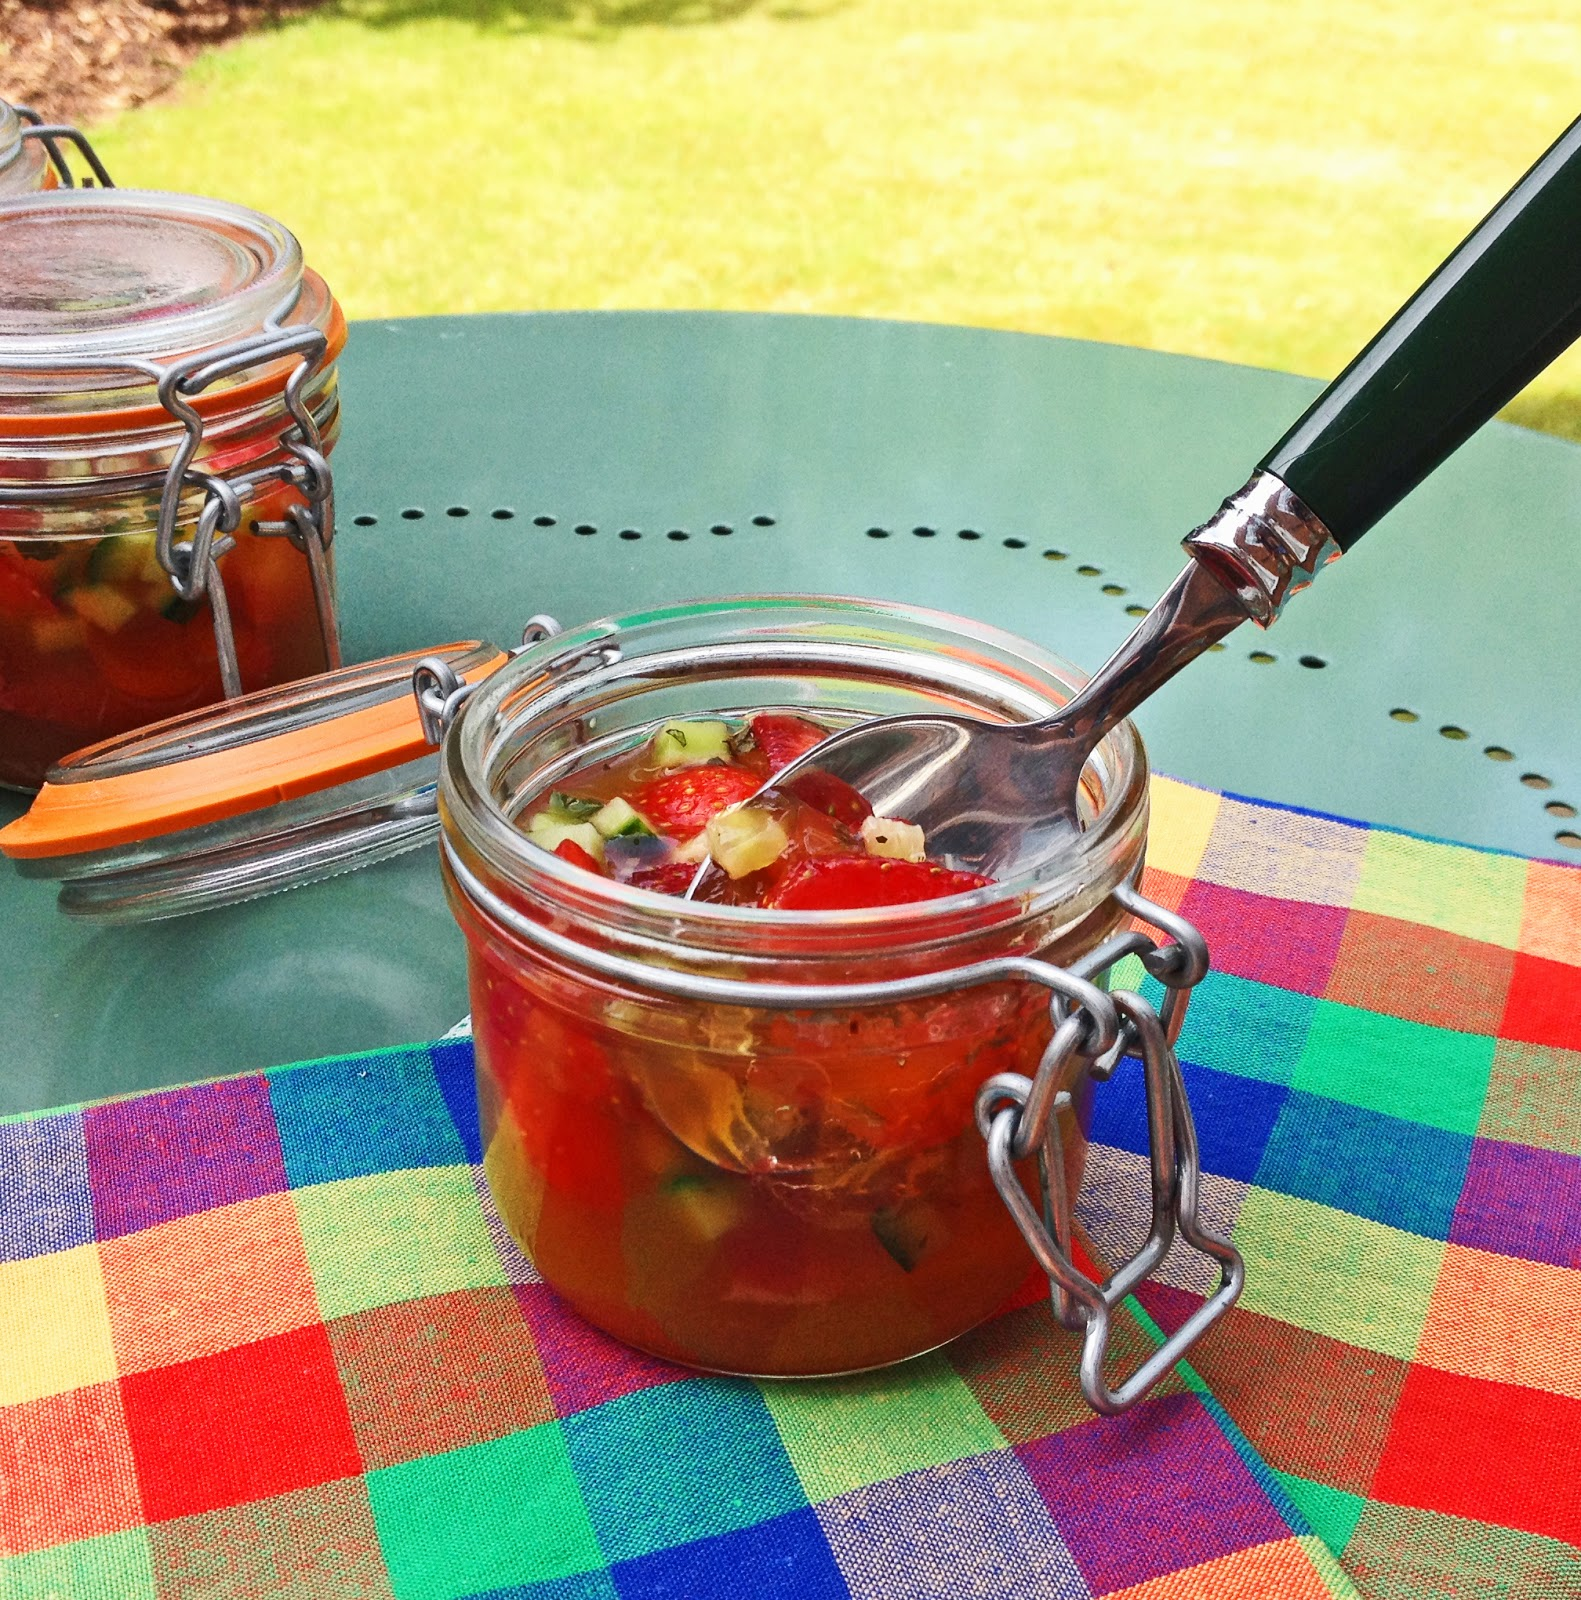 Pimm's jelly jars